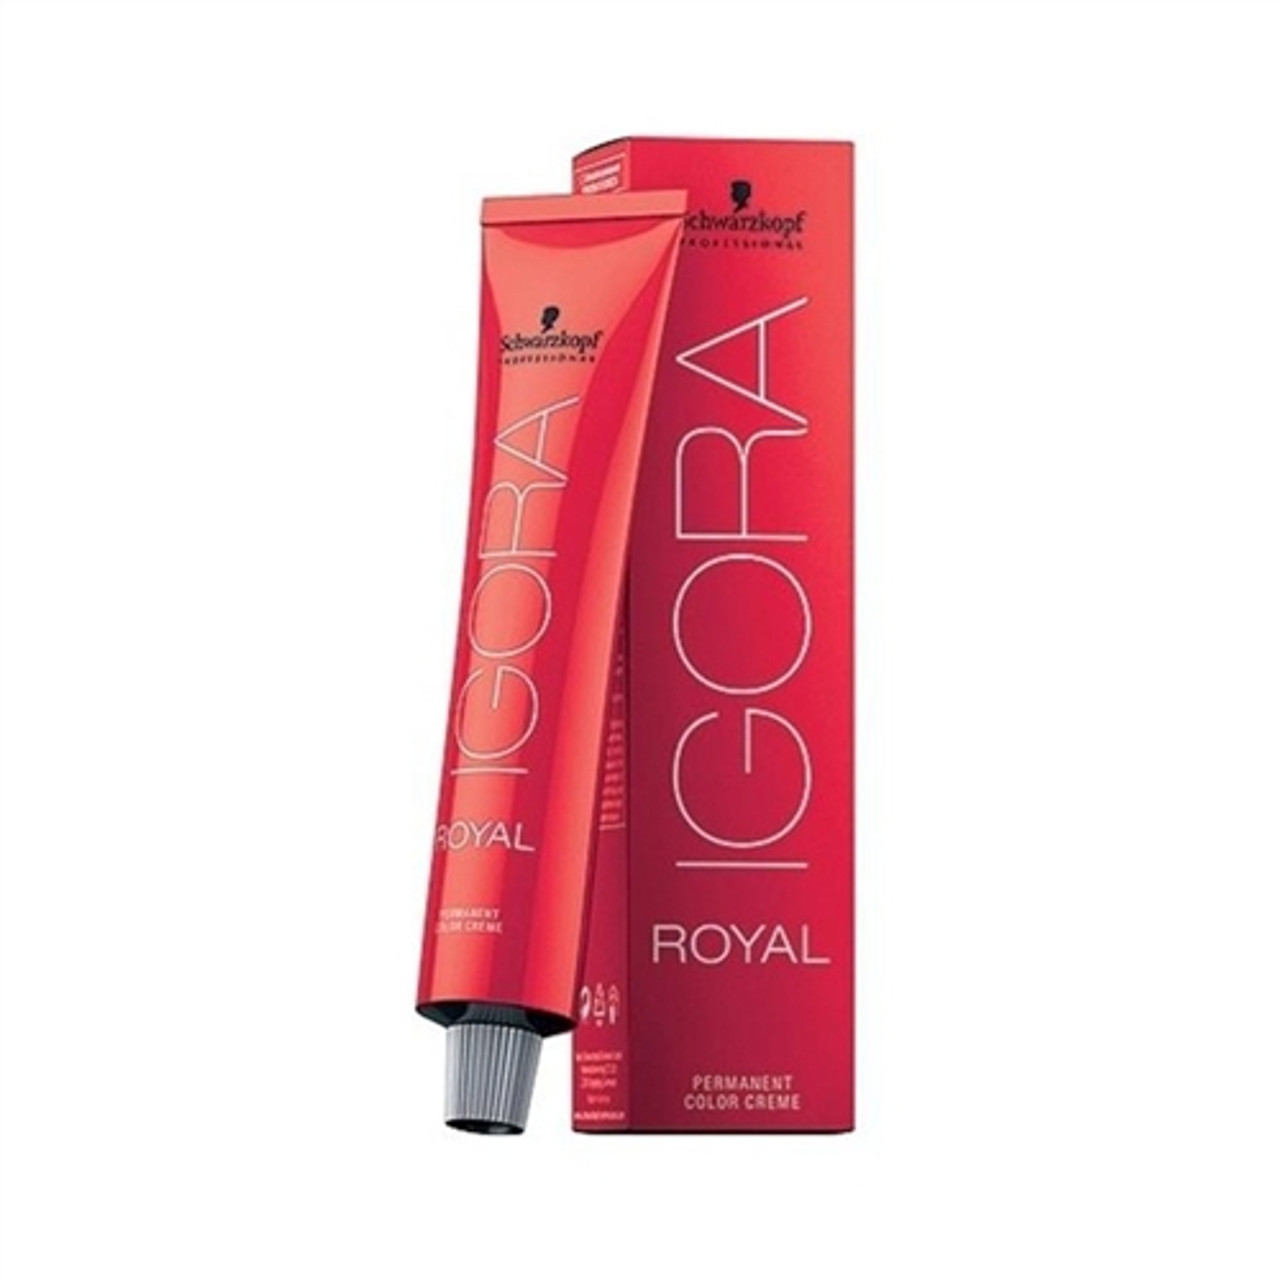 12-1  Ultimate Ash blondee Igora Royal Permanent Color Creme -